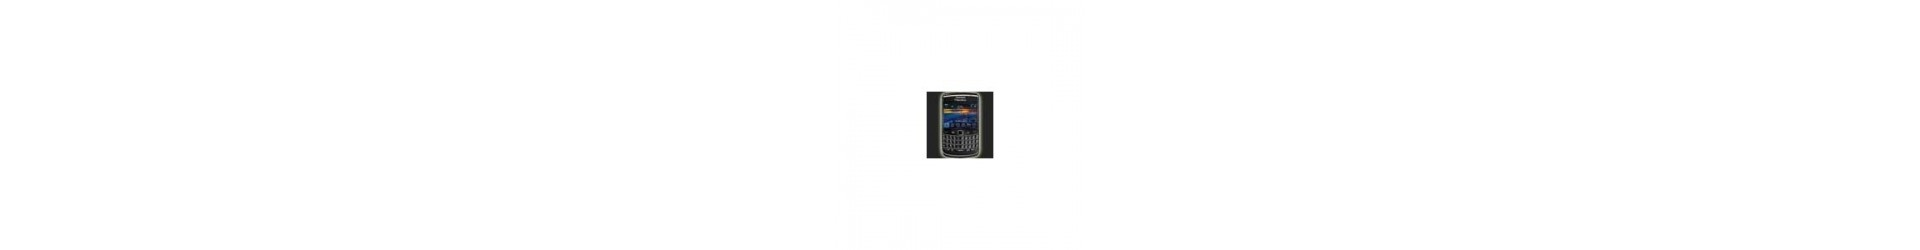 Blackberry 9700 9780